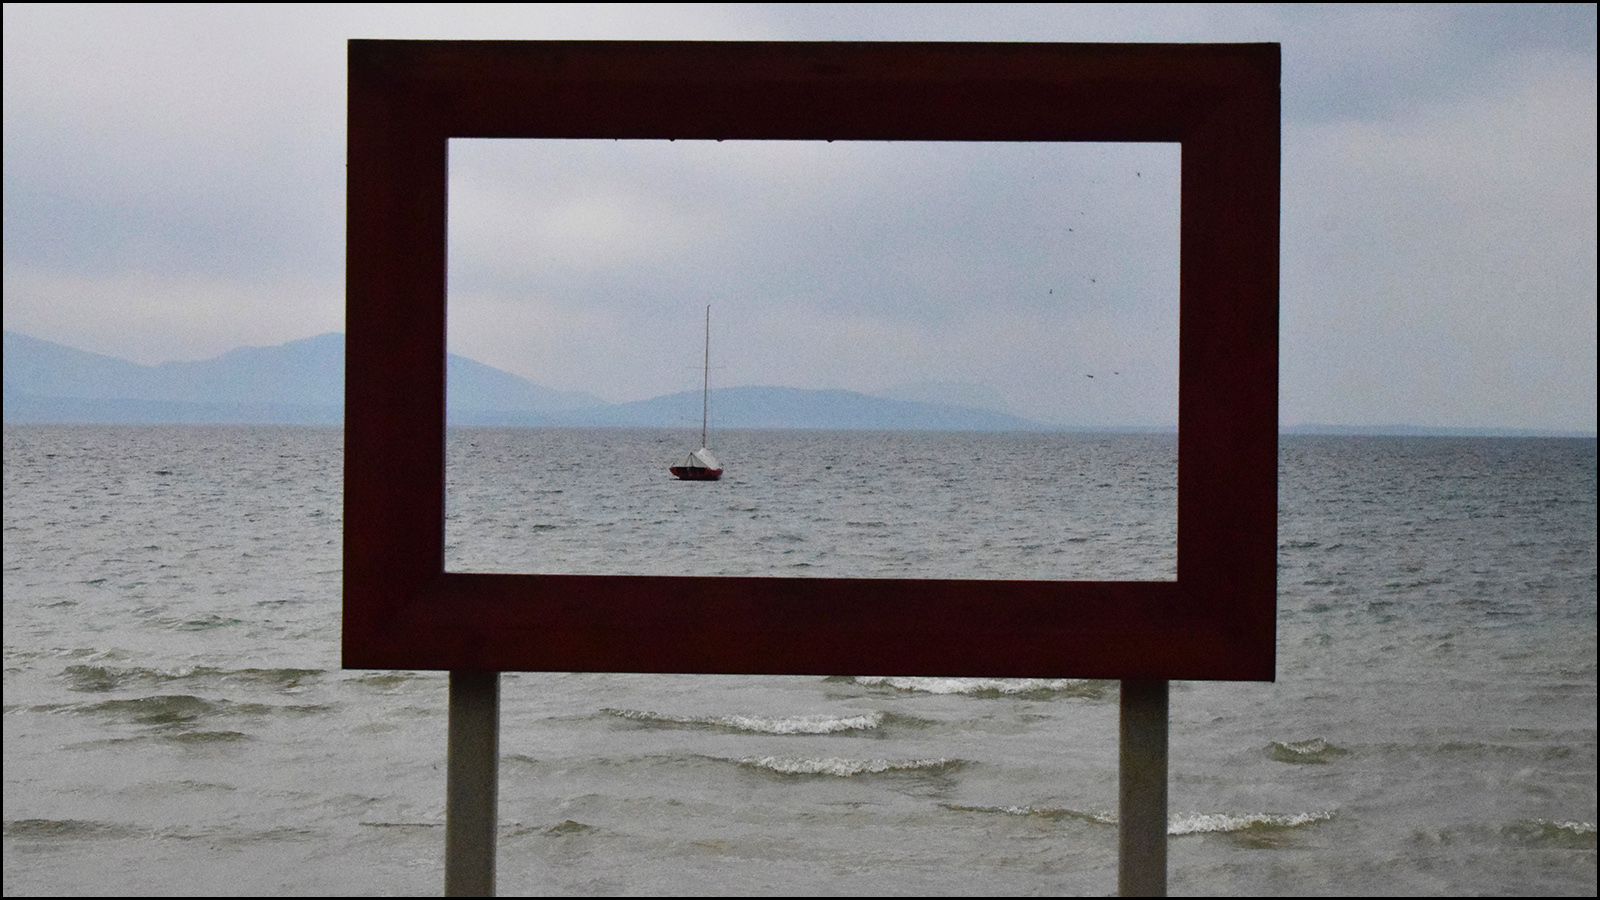 a picture of a picture of a boat - perspective fun (c) mark somple 2019